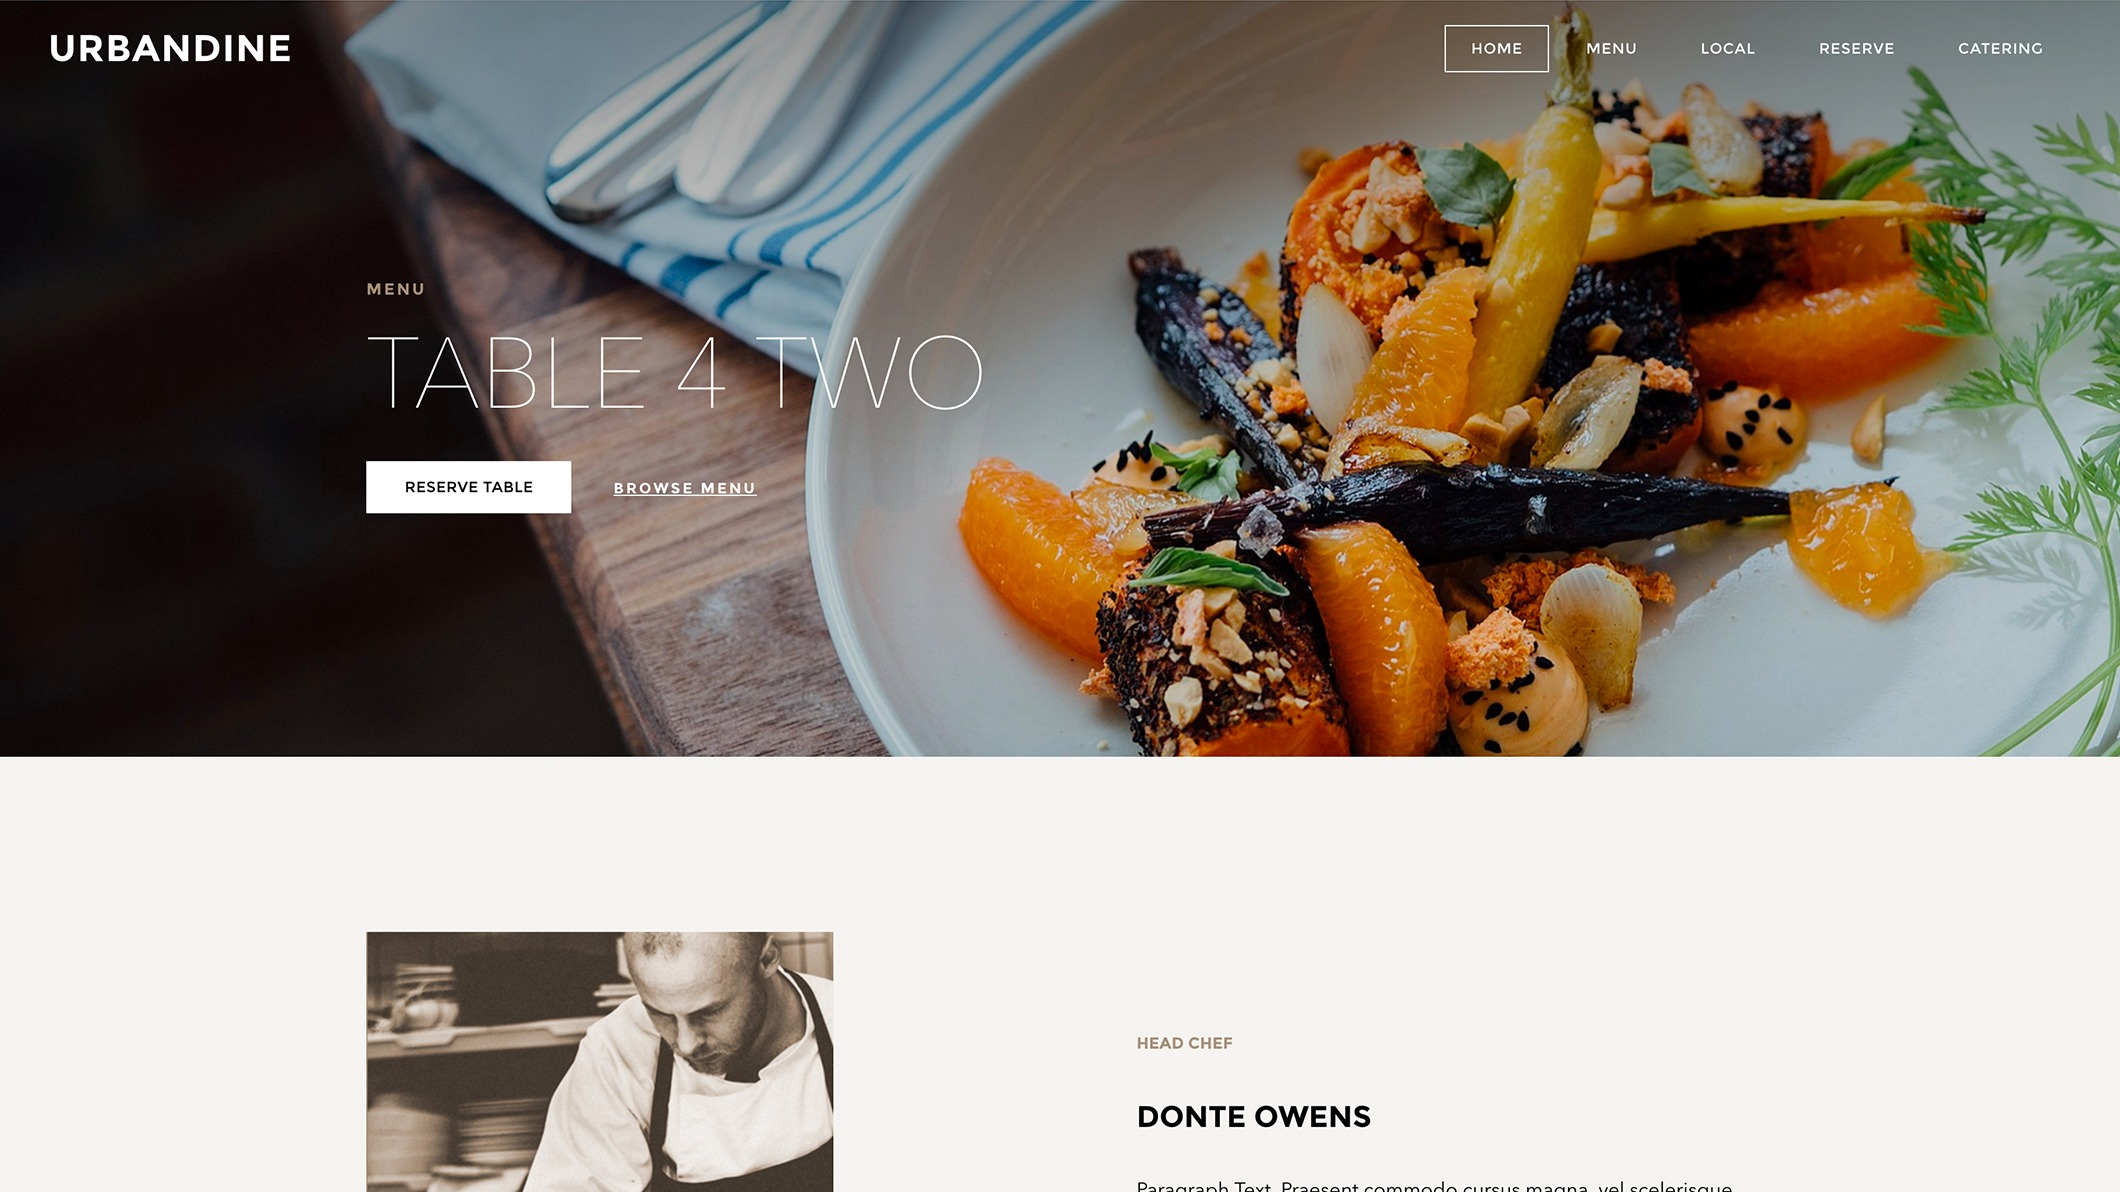 Weebly Theme 'Urban Dine'